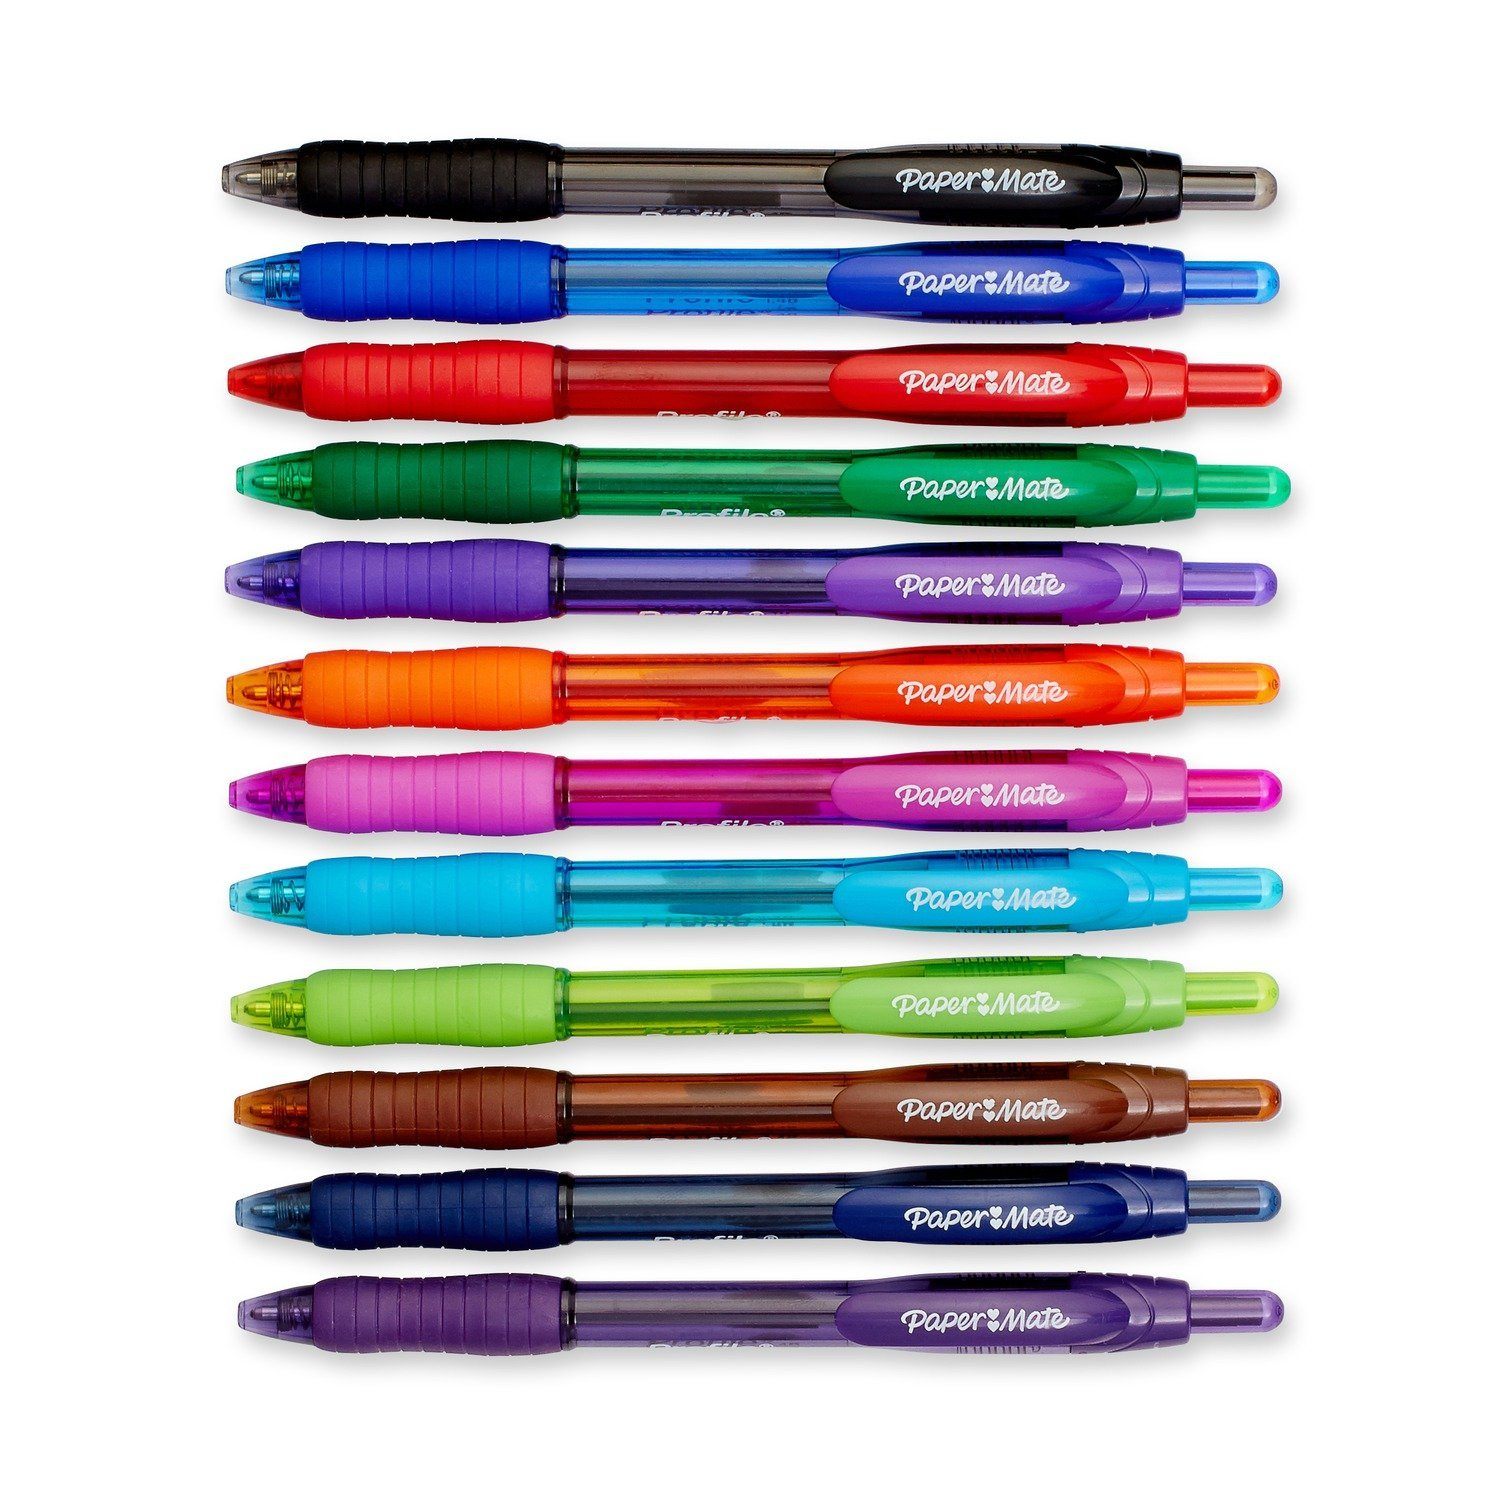 Paper Mate Profile Retractable Ballpoint Pens, Bold (1.4mm), Assorted Colors, 12 Count by Paper Mate (Image #3)